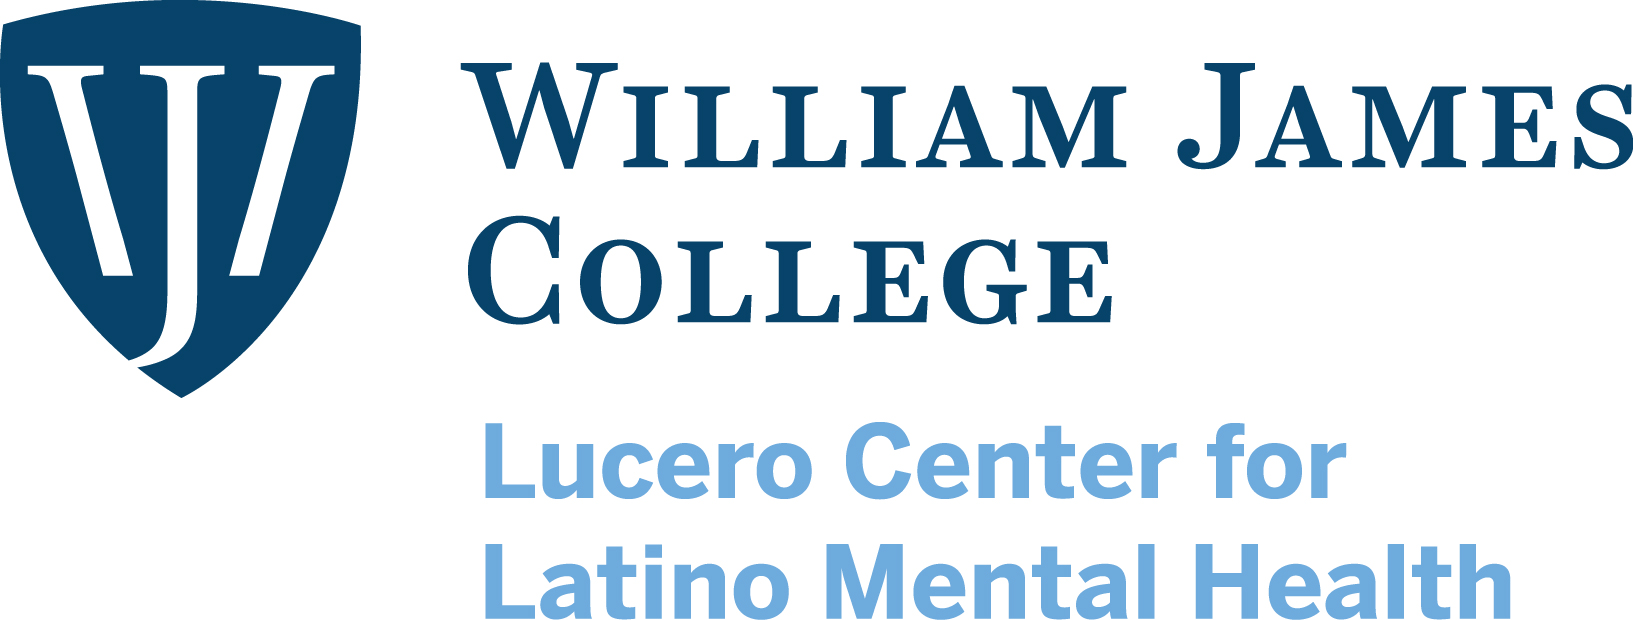 William James College is a leader in educating the next generation of mental health professionals to support the growing and diverse needs of the mental health workforce. Integrating field work with academics, the College prepares students for careers as organizational leaders and behavioral health professionals who are committed to helping the underserved, multicultural populations, children and families and Veterans. William James College graduates can be found making an impact in a variety of settings, including schools, the courts, clinical care facilities, hospitals, the community and the workplace. At William James College, we are proud to offer the Lucero Latino Mental Health Program to all graduate students. This is an opportunity to train language and culturally competent providers to meet the needs of Latino populations.